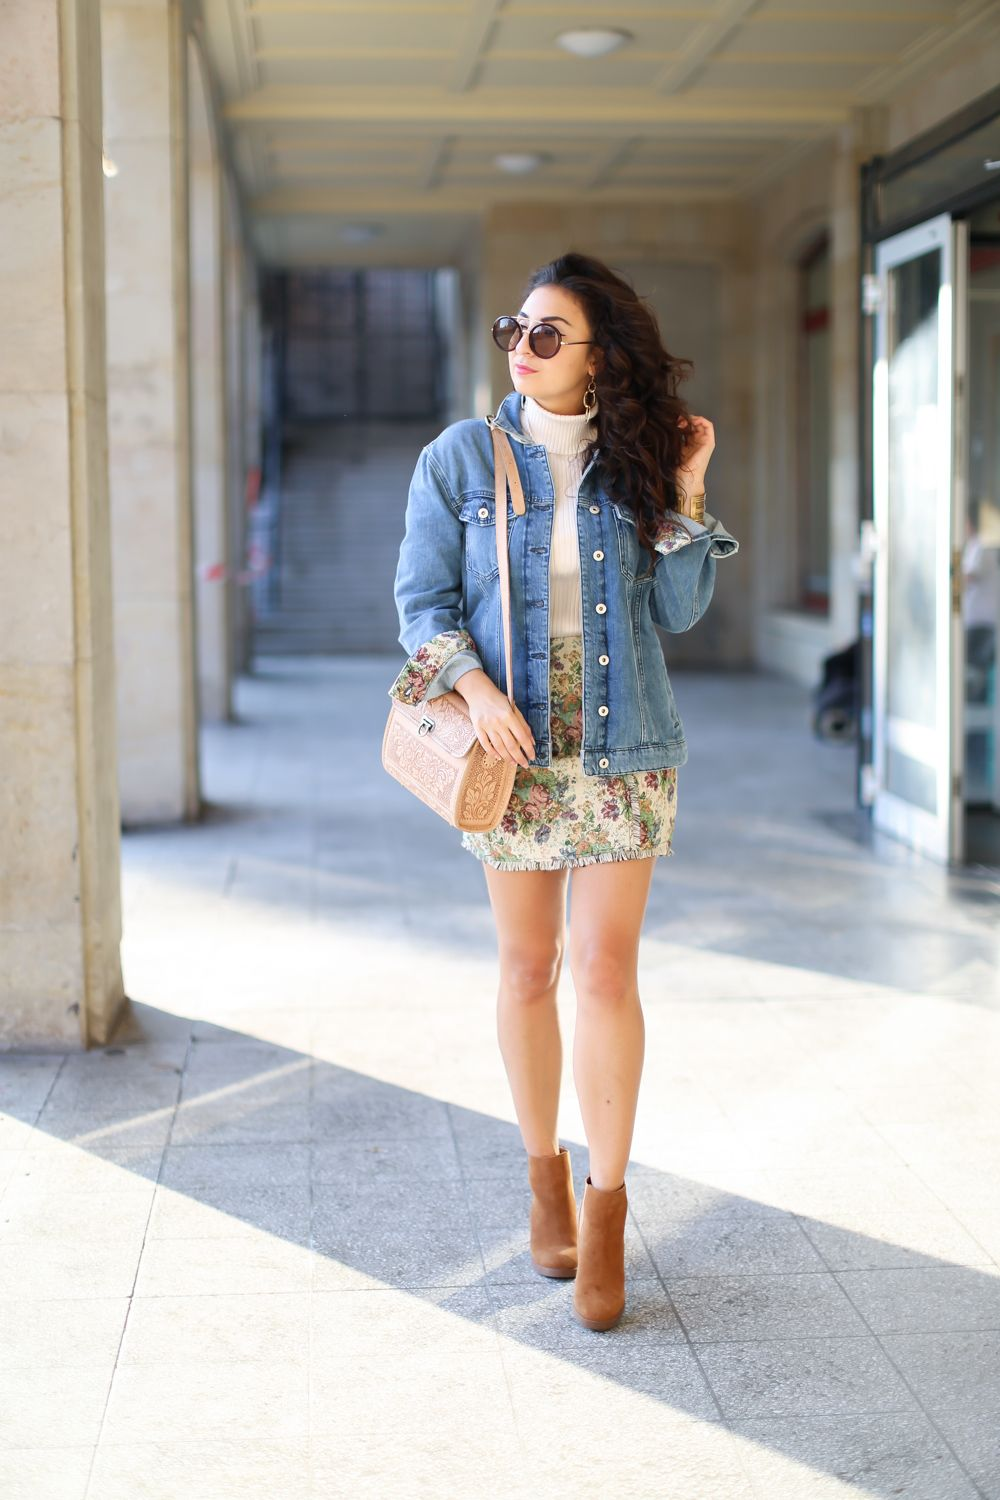 fc44af50ec Matching Mini Skirt and Denim Jacket esprit outfit suede boots autumn look  fall style streetstyle jeansjacke minirock herbst fashionblogger mode blog  ...